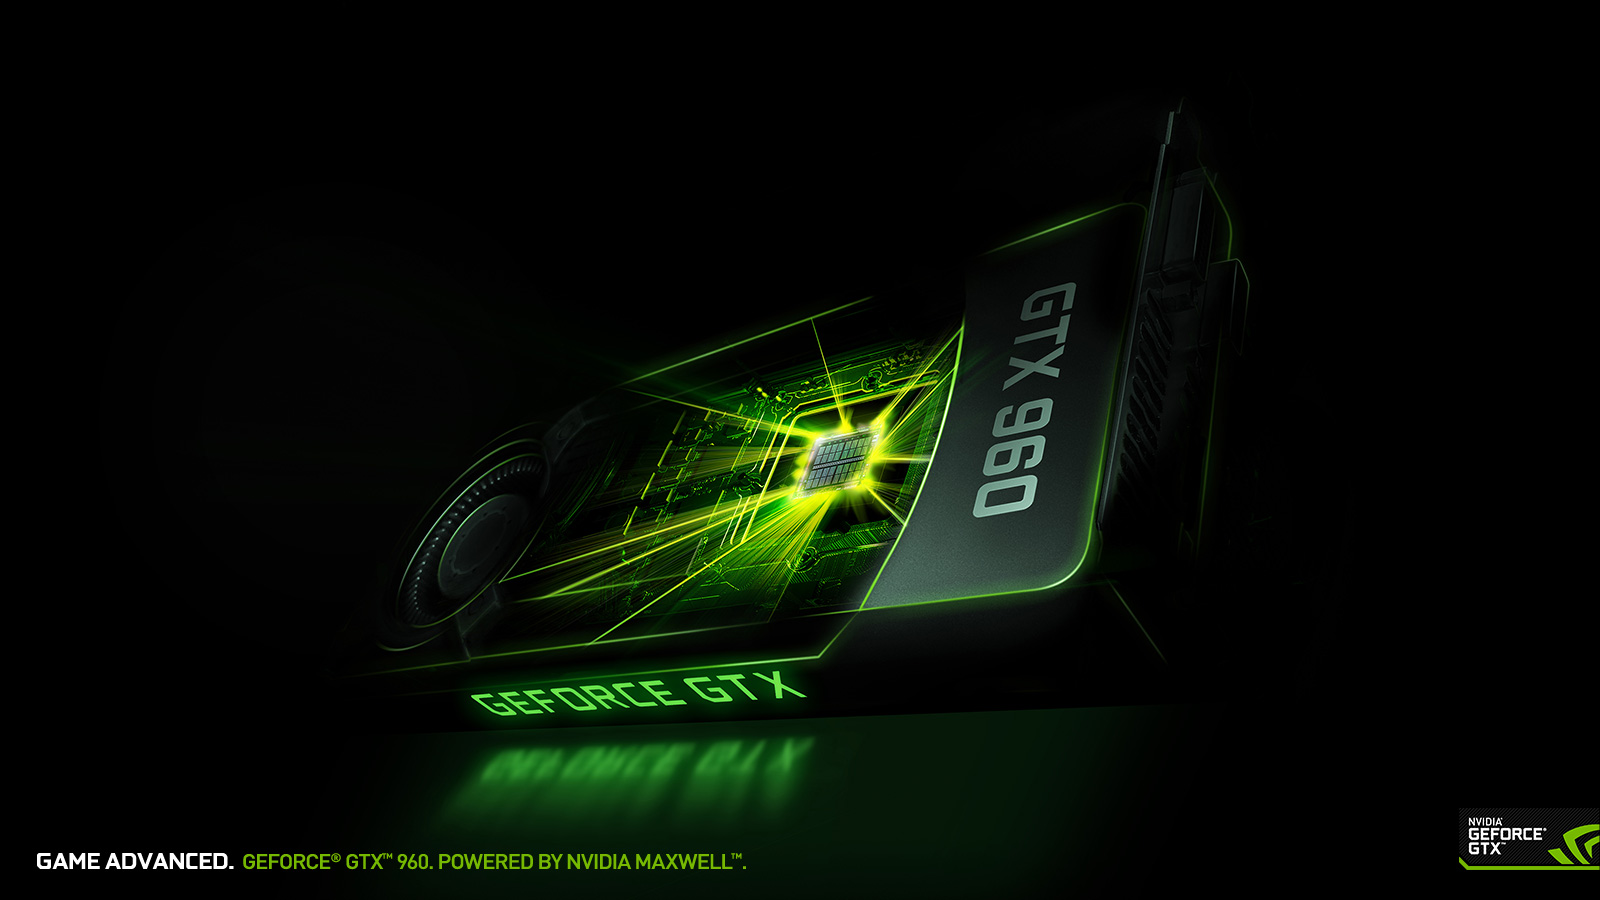 Download The GeForce GTX 960 Wallpapers